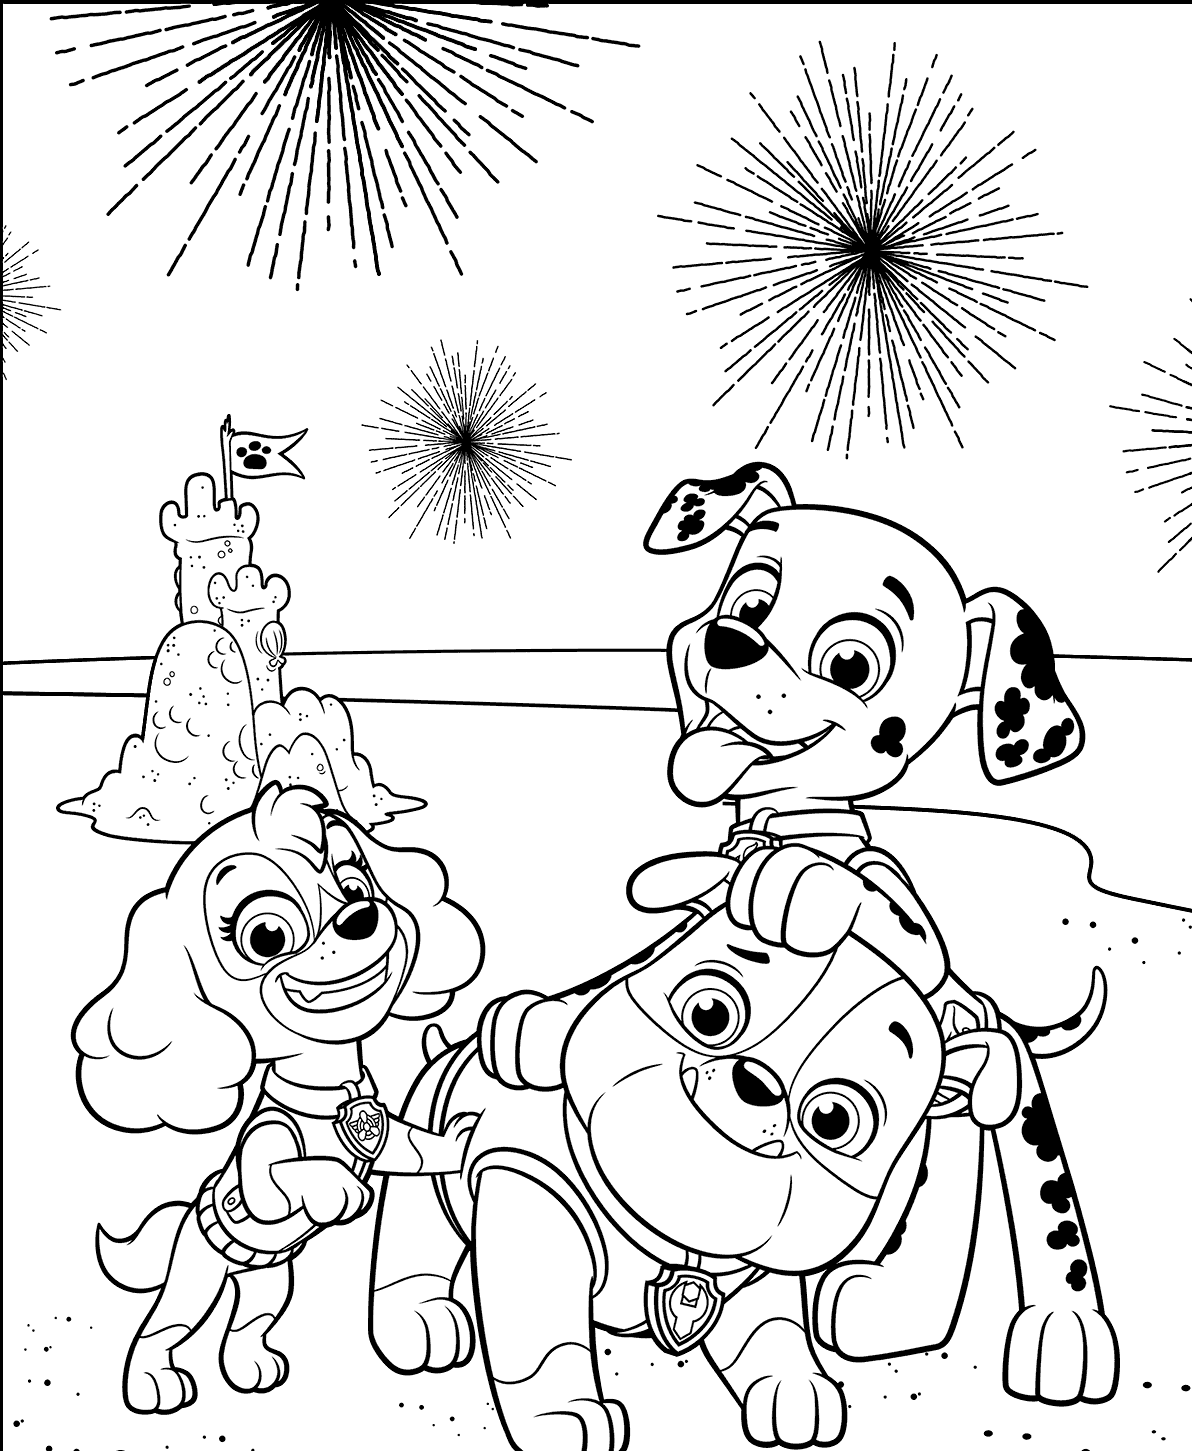 PAW Patrol 4th of July Coloring Page